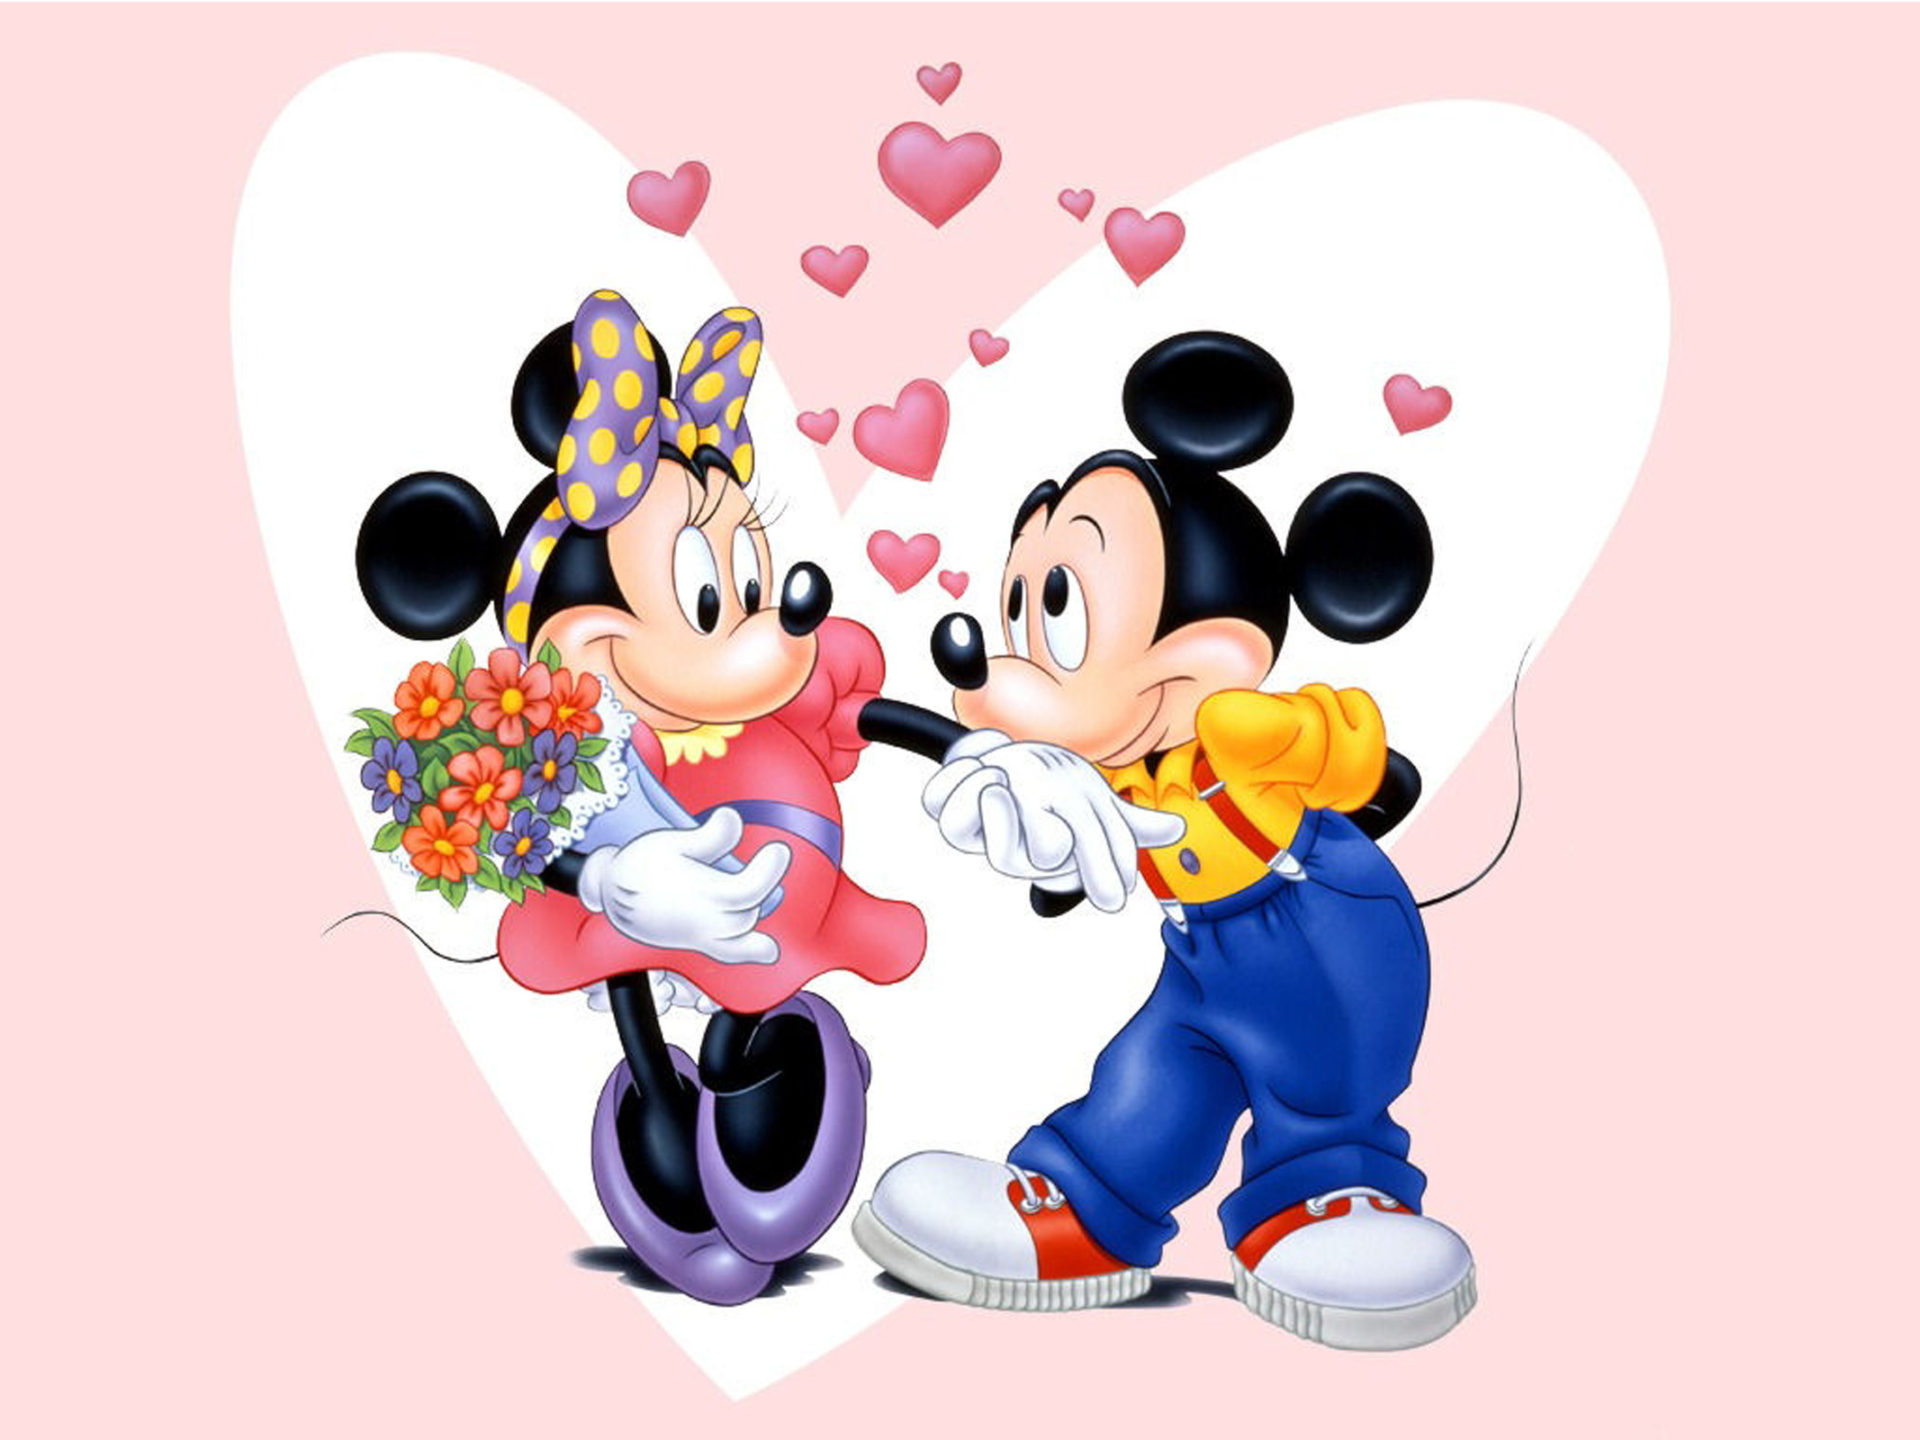 Cartoon Love Couple Hd Wallpapers Mickey Mouse And Minnie Love Couple Wallpaper Hd